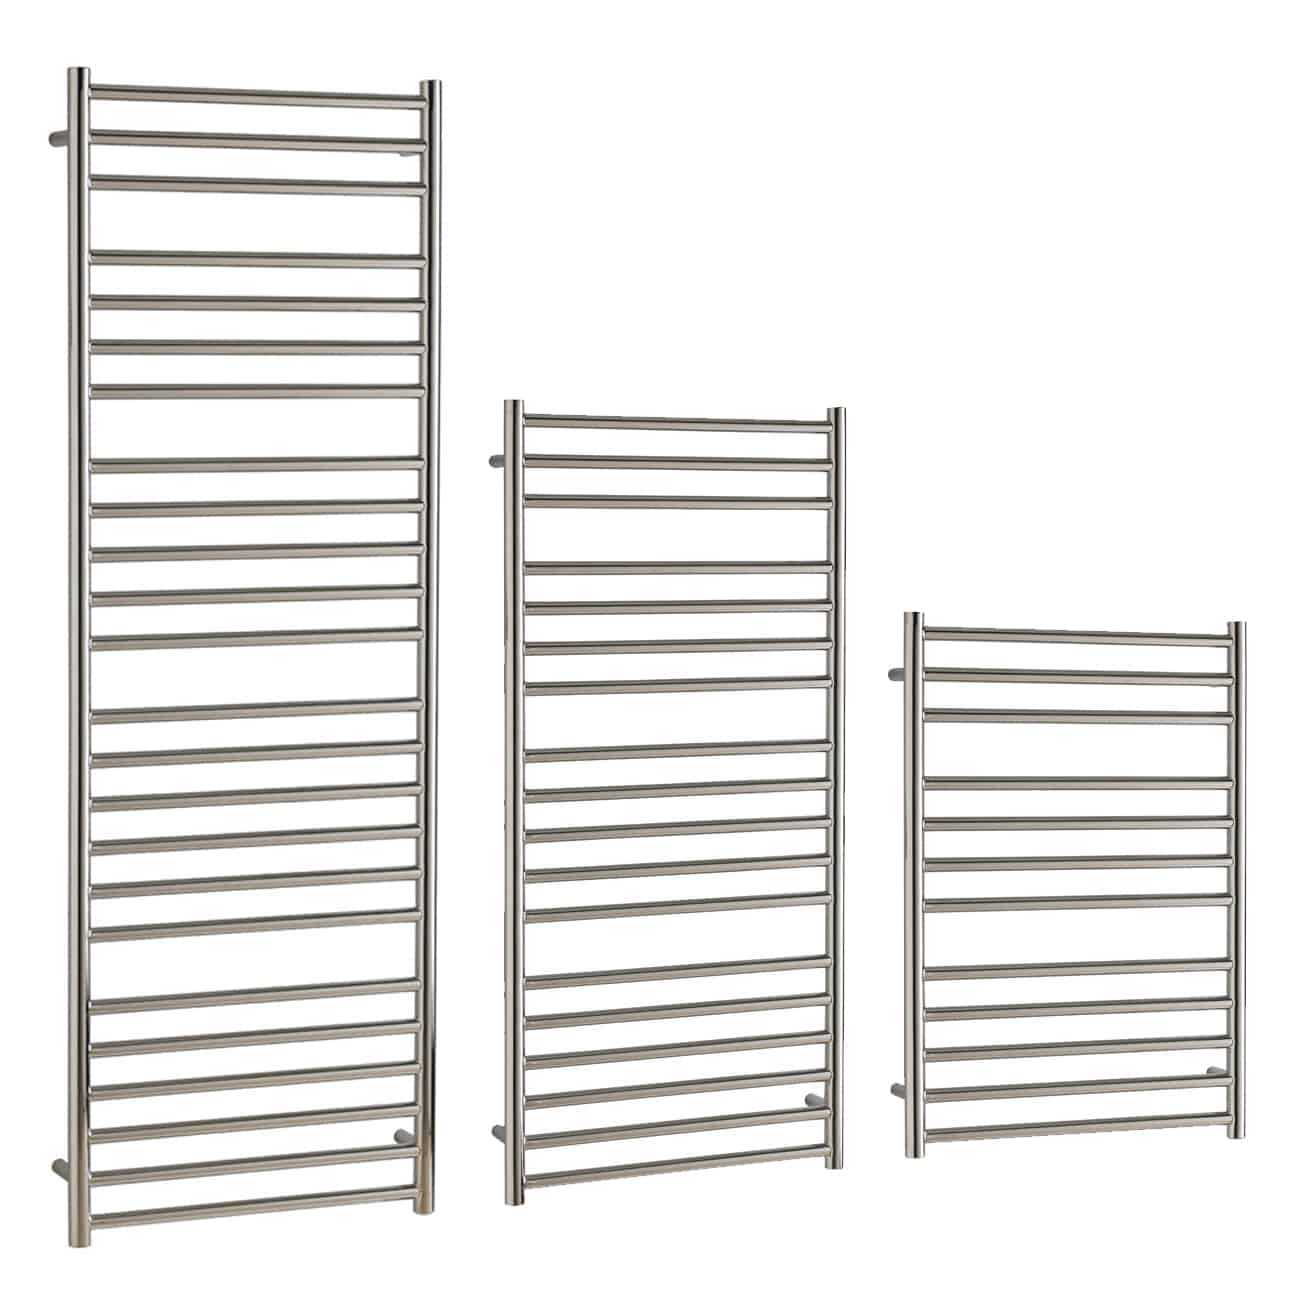 BRADDAN Stainless Steel Modern Towel Warmer / Heated Towel Rail – Central Heating